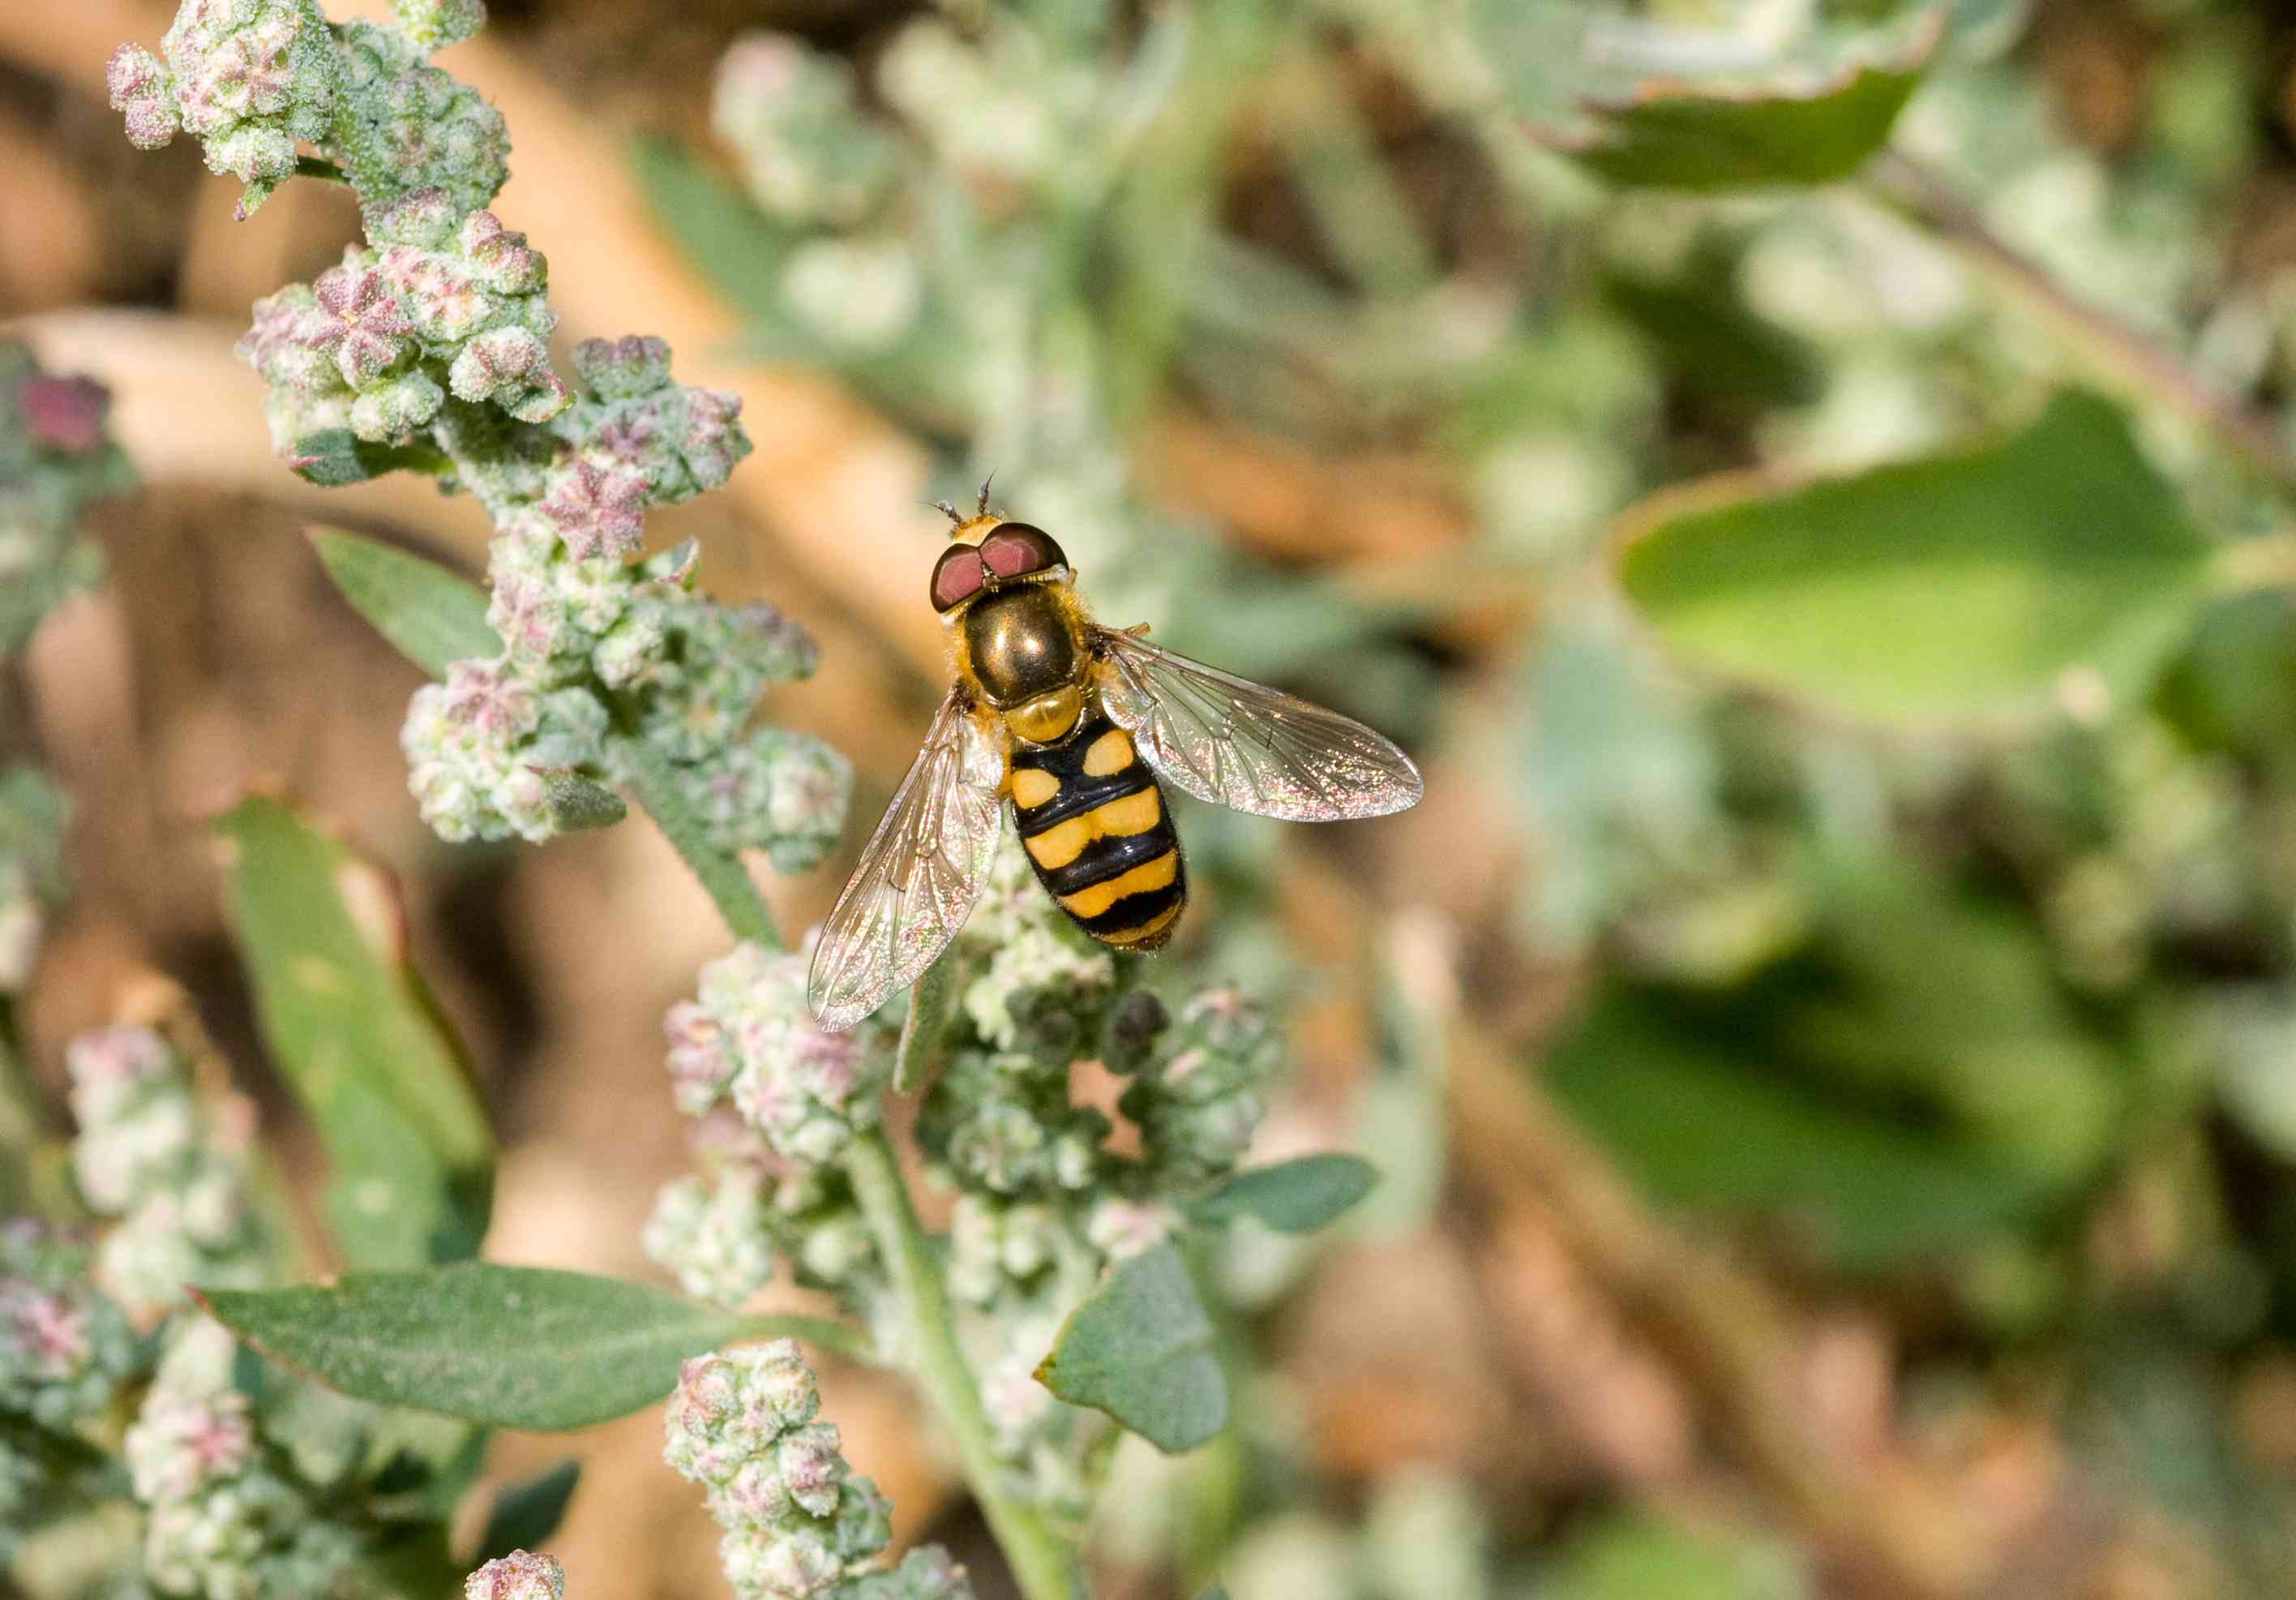 Hoverflies are attracted by small flowers